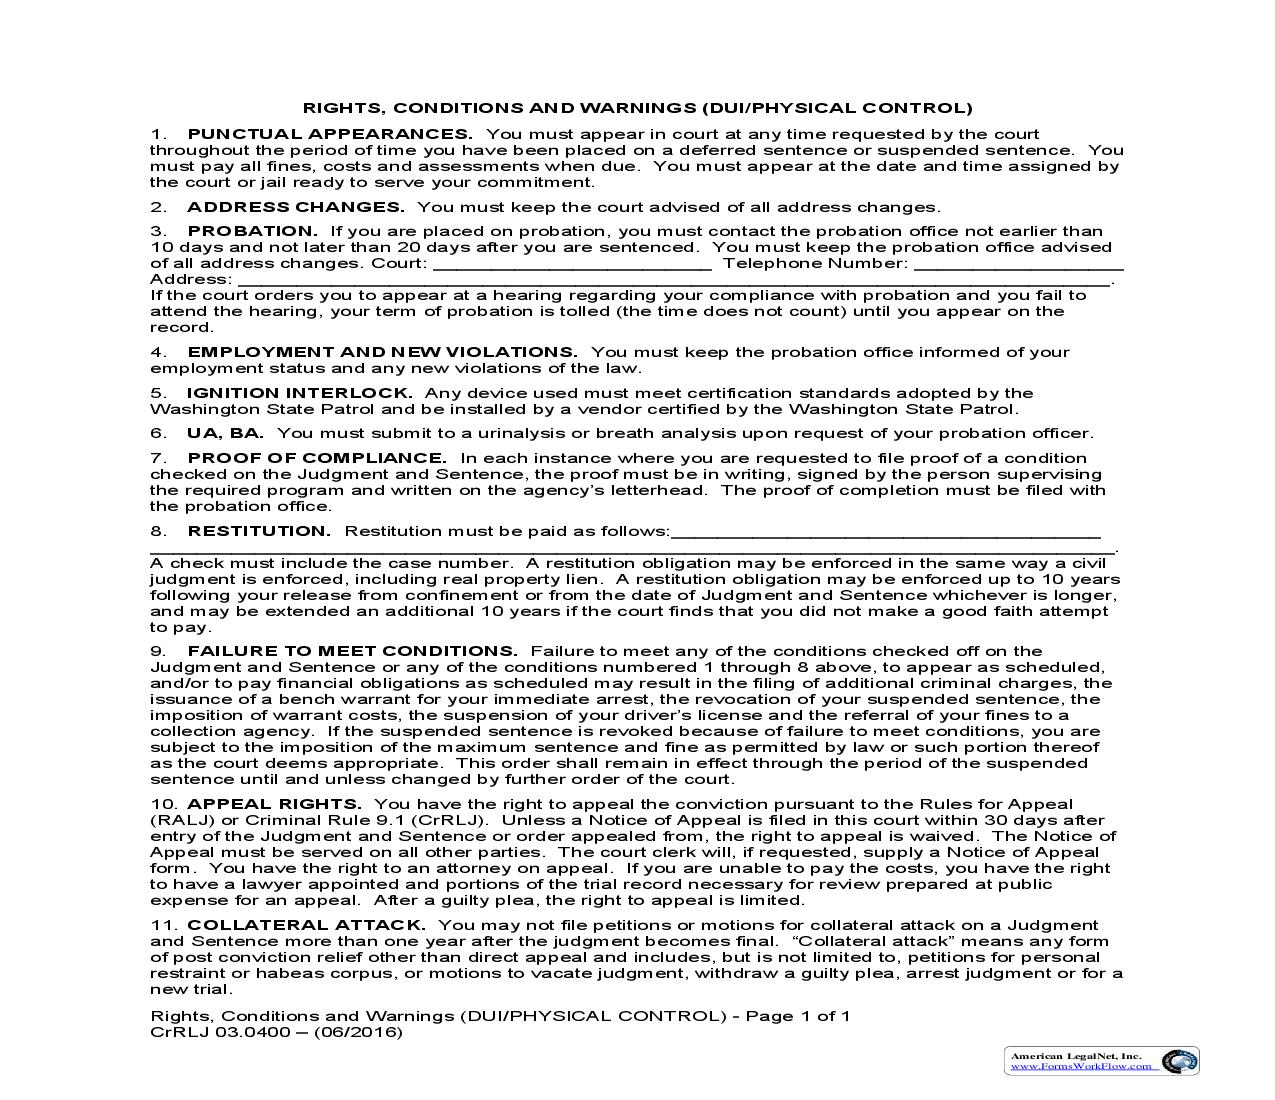 Rights Conditions And Warnings (DUI-Physical Control) {CrRLJ 03.0400}   Pdf Fpdf Doc Docx   Washington